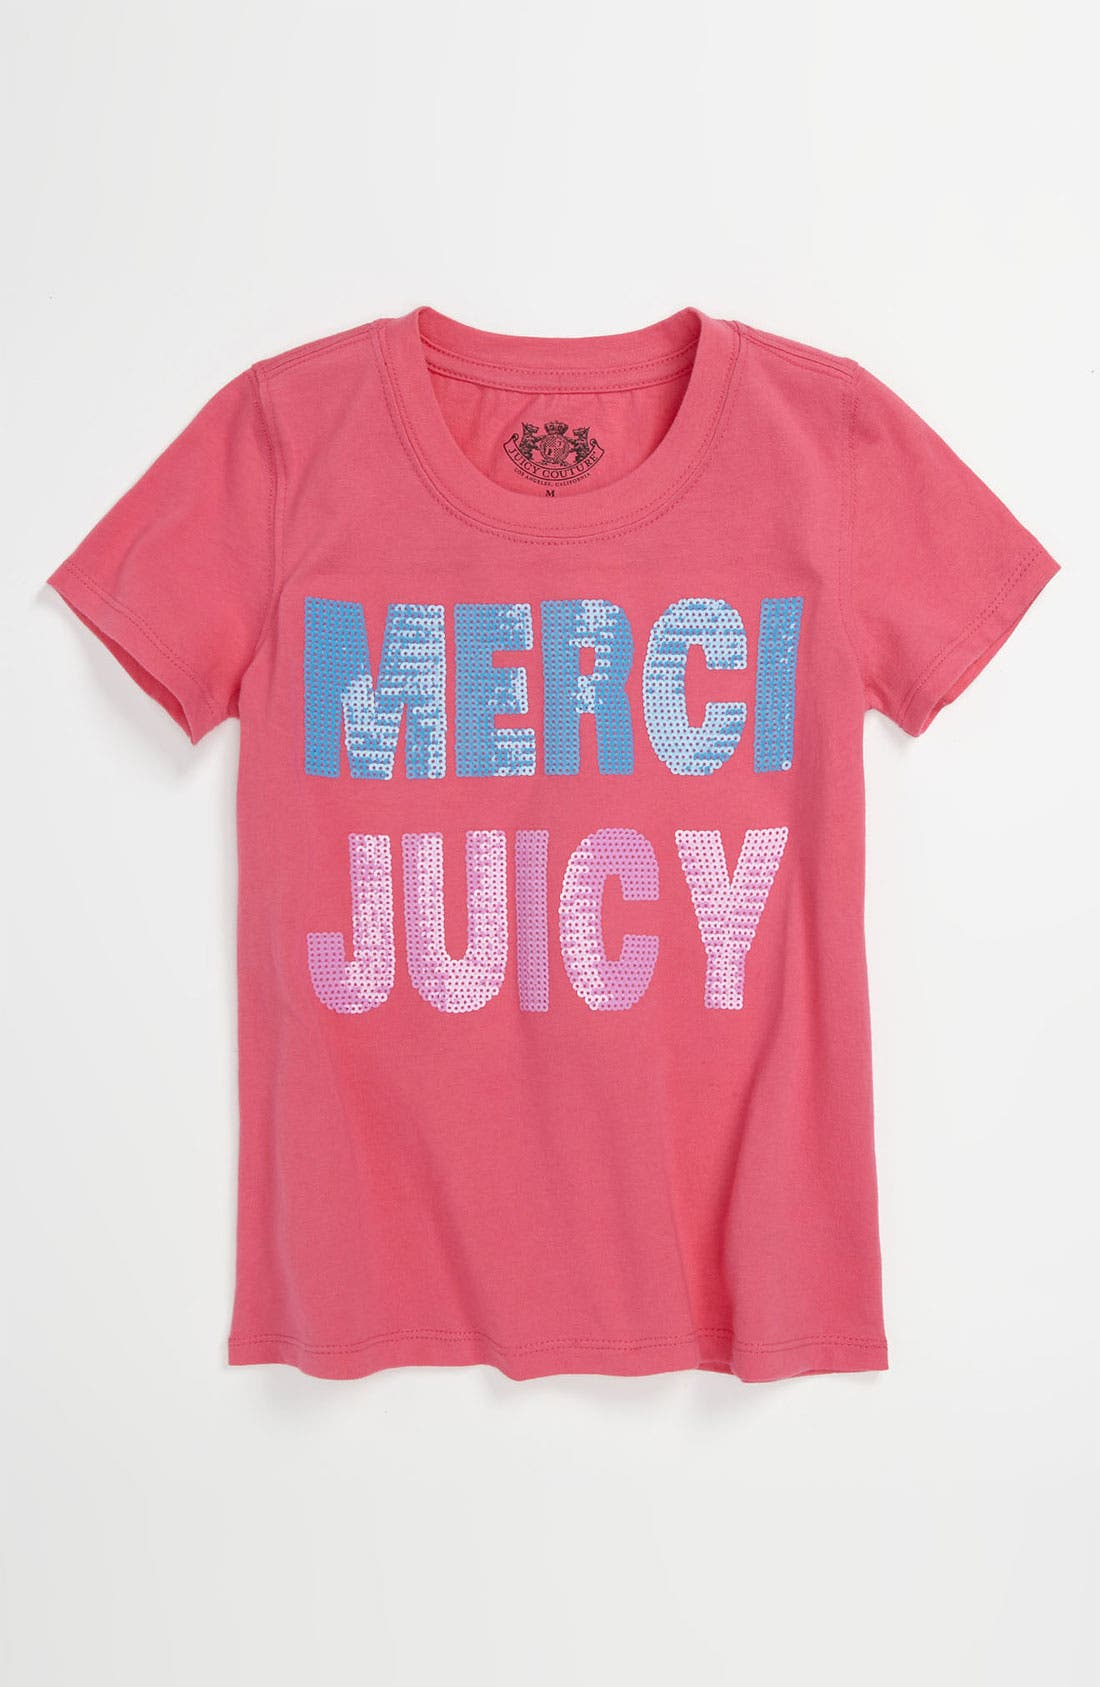 Alternate Image 1 Selected - Juicy Couture 'Merci Juicy' Tee (Little Girls & Big Girls)